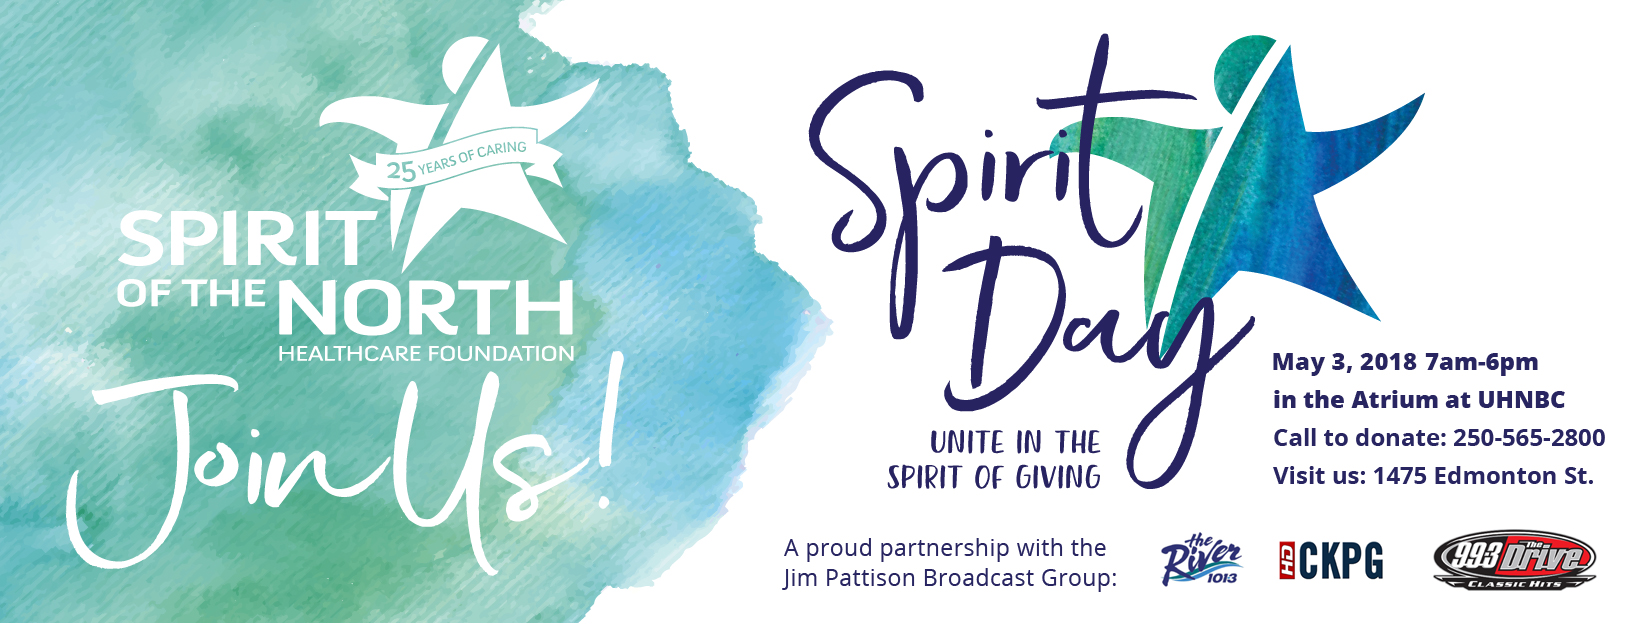 Spirit of the North Healthcare Foundation's Spirit Day